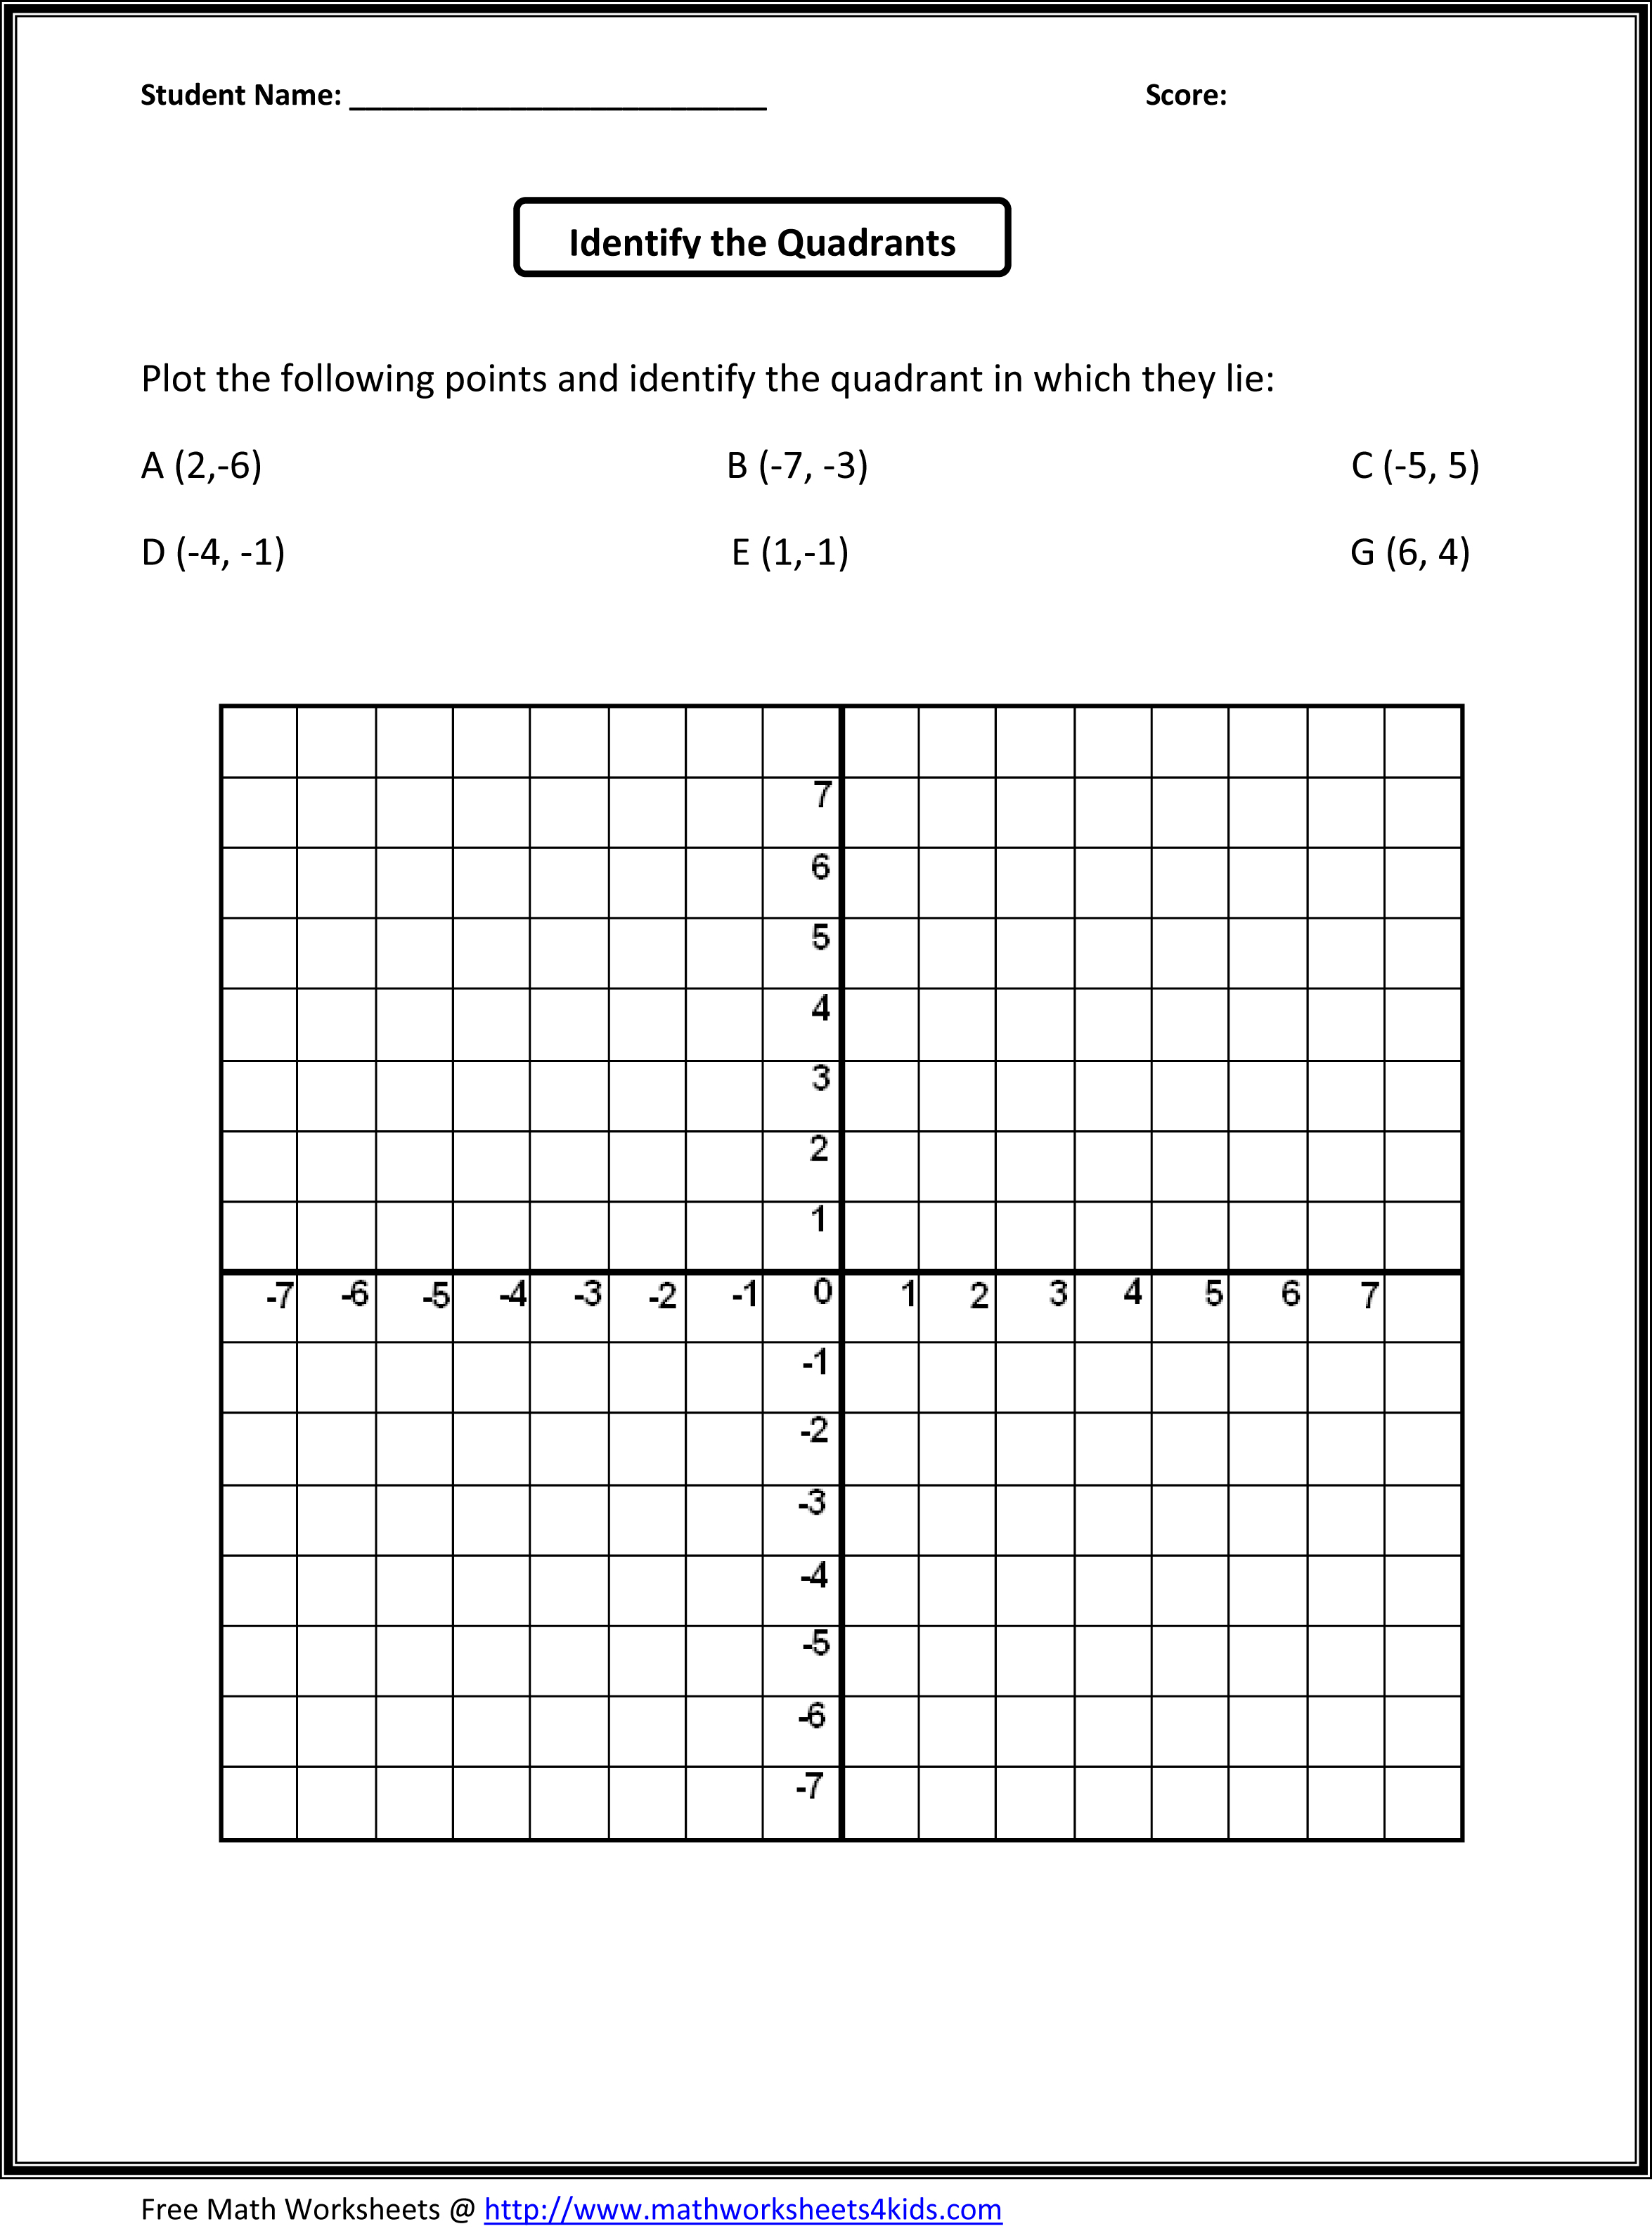 Hard math problems for 5th graders Coursework Help – Math 5th Grade Worksheets